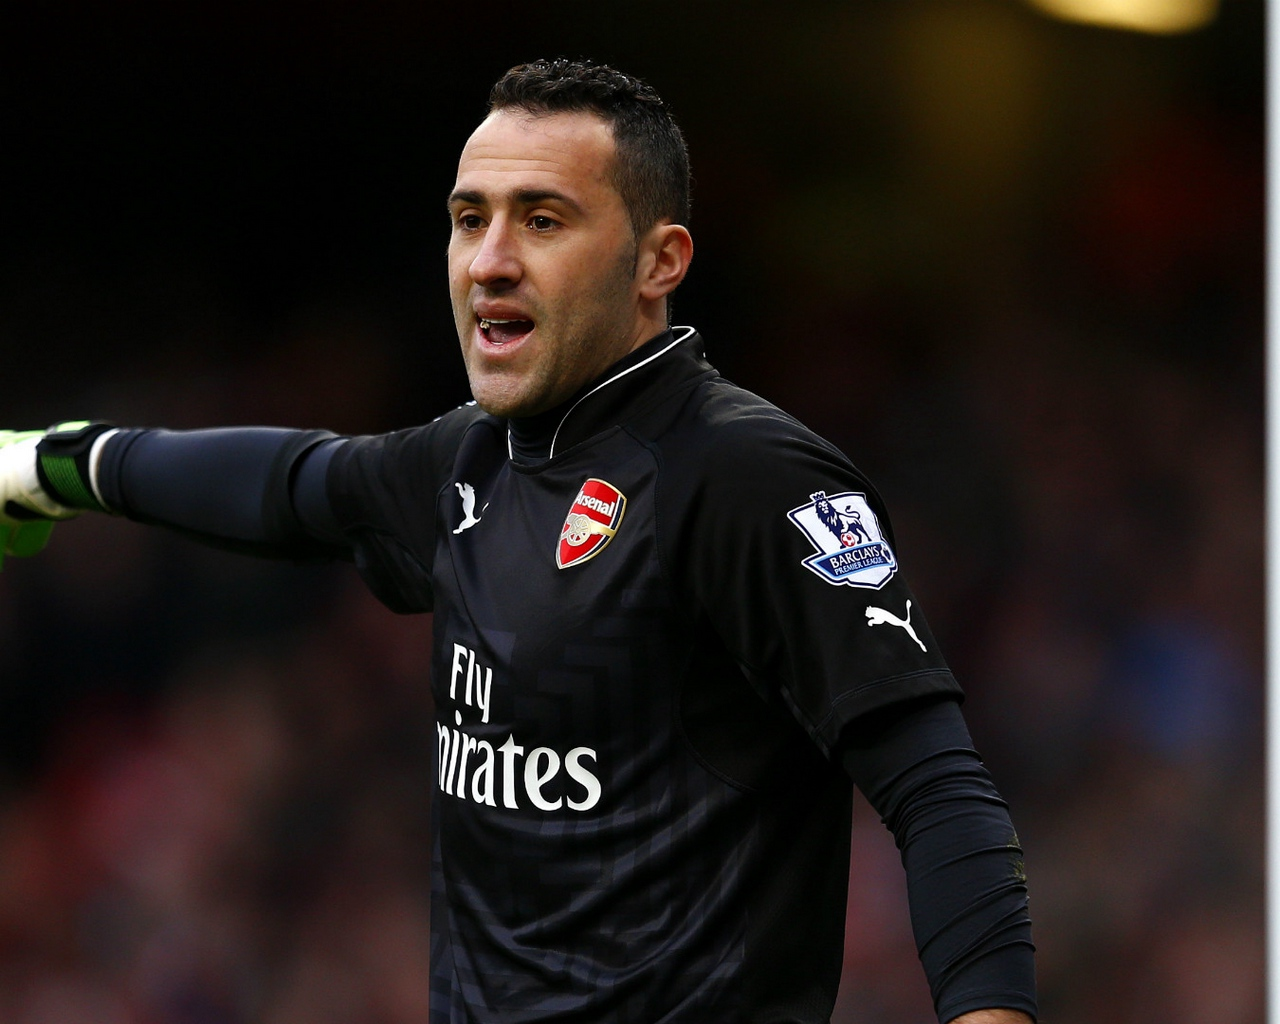 Download wallpaper 1280x1024 david ospina arsenal footballer 1280x1024